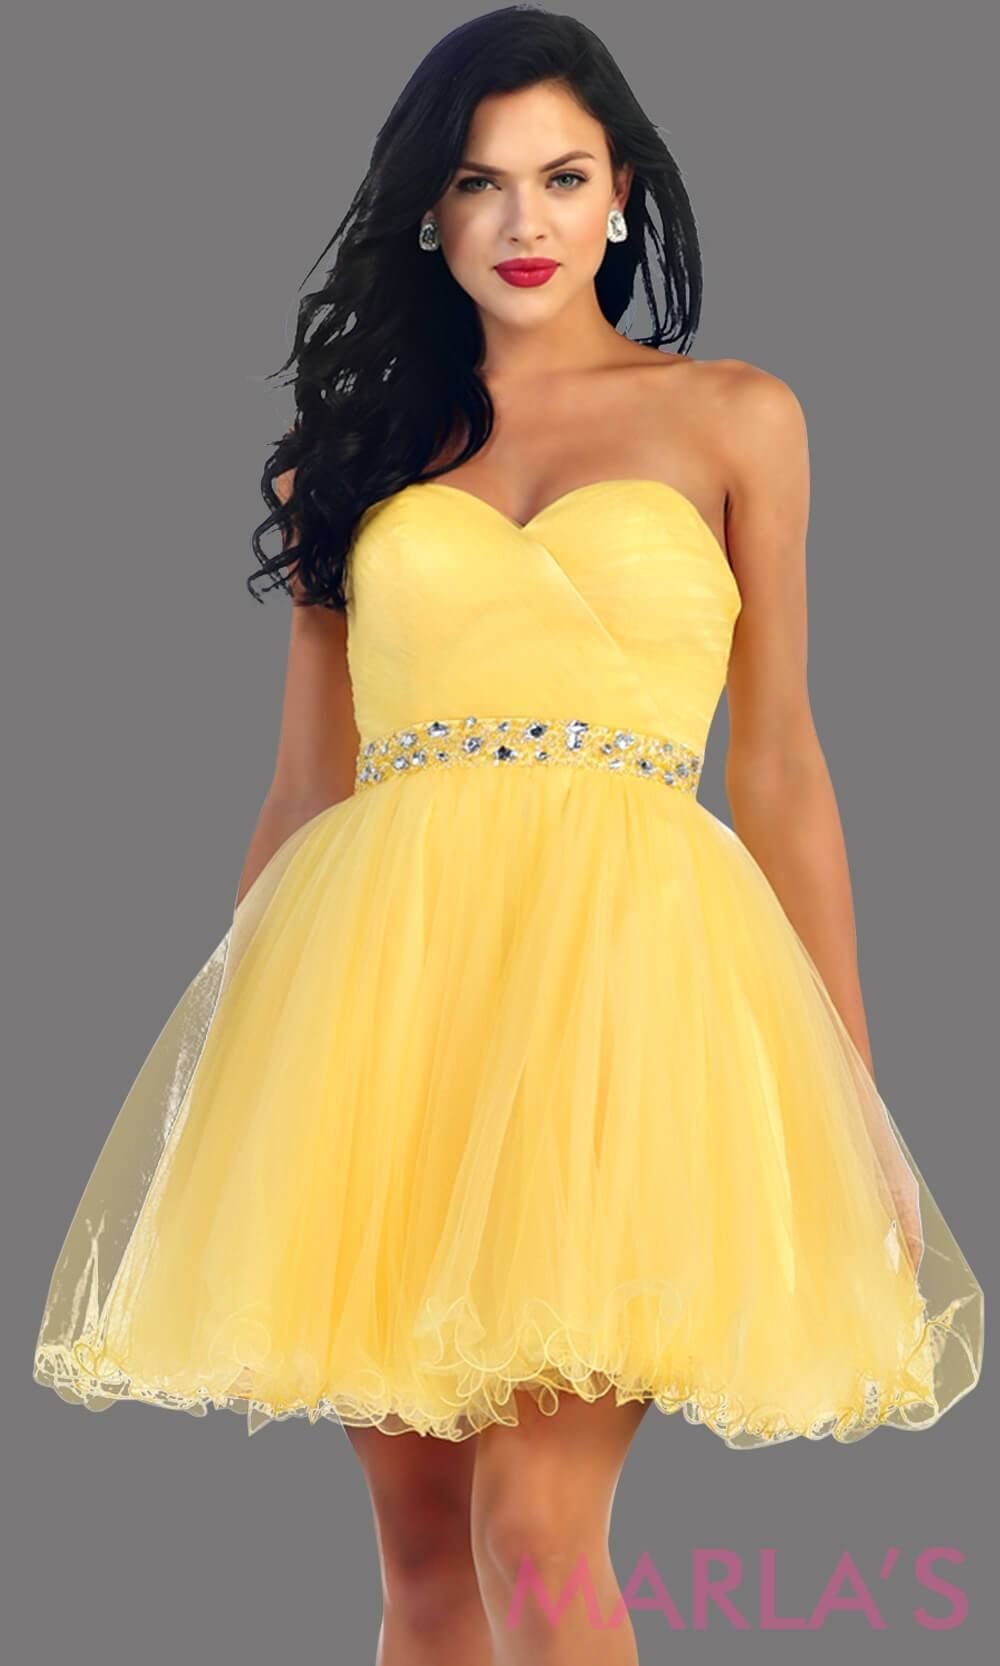 Short strapless puffy yellow dress with